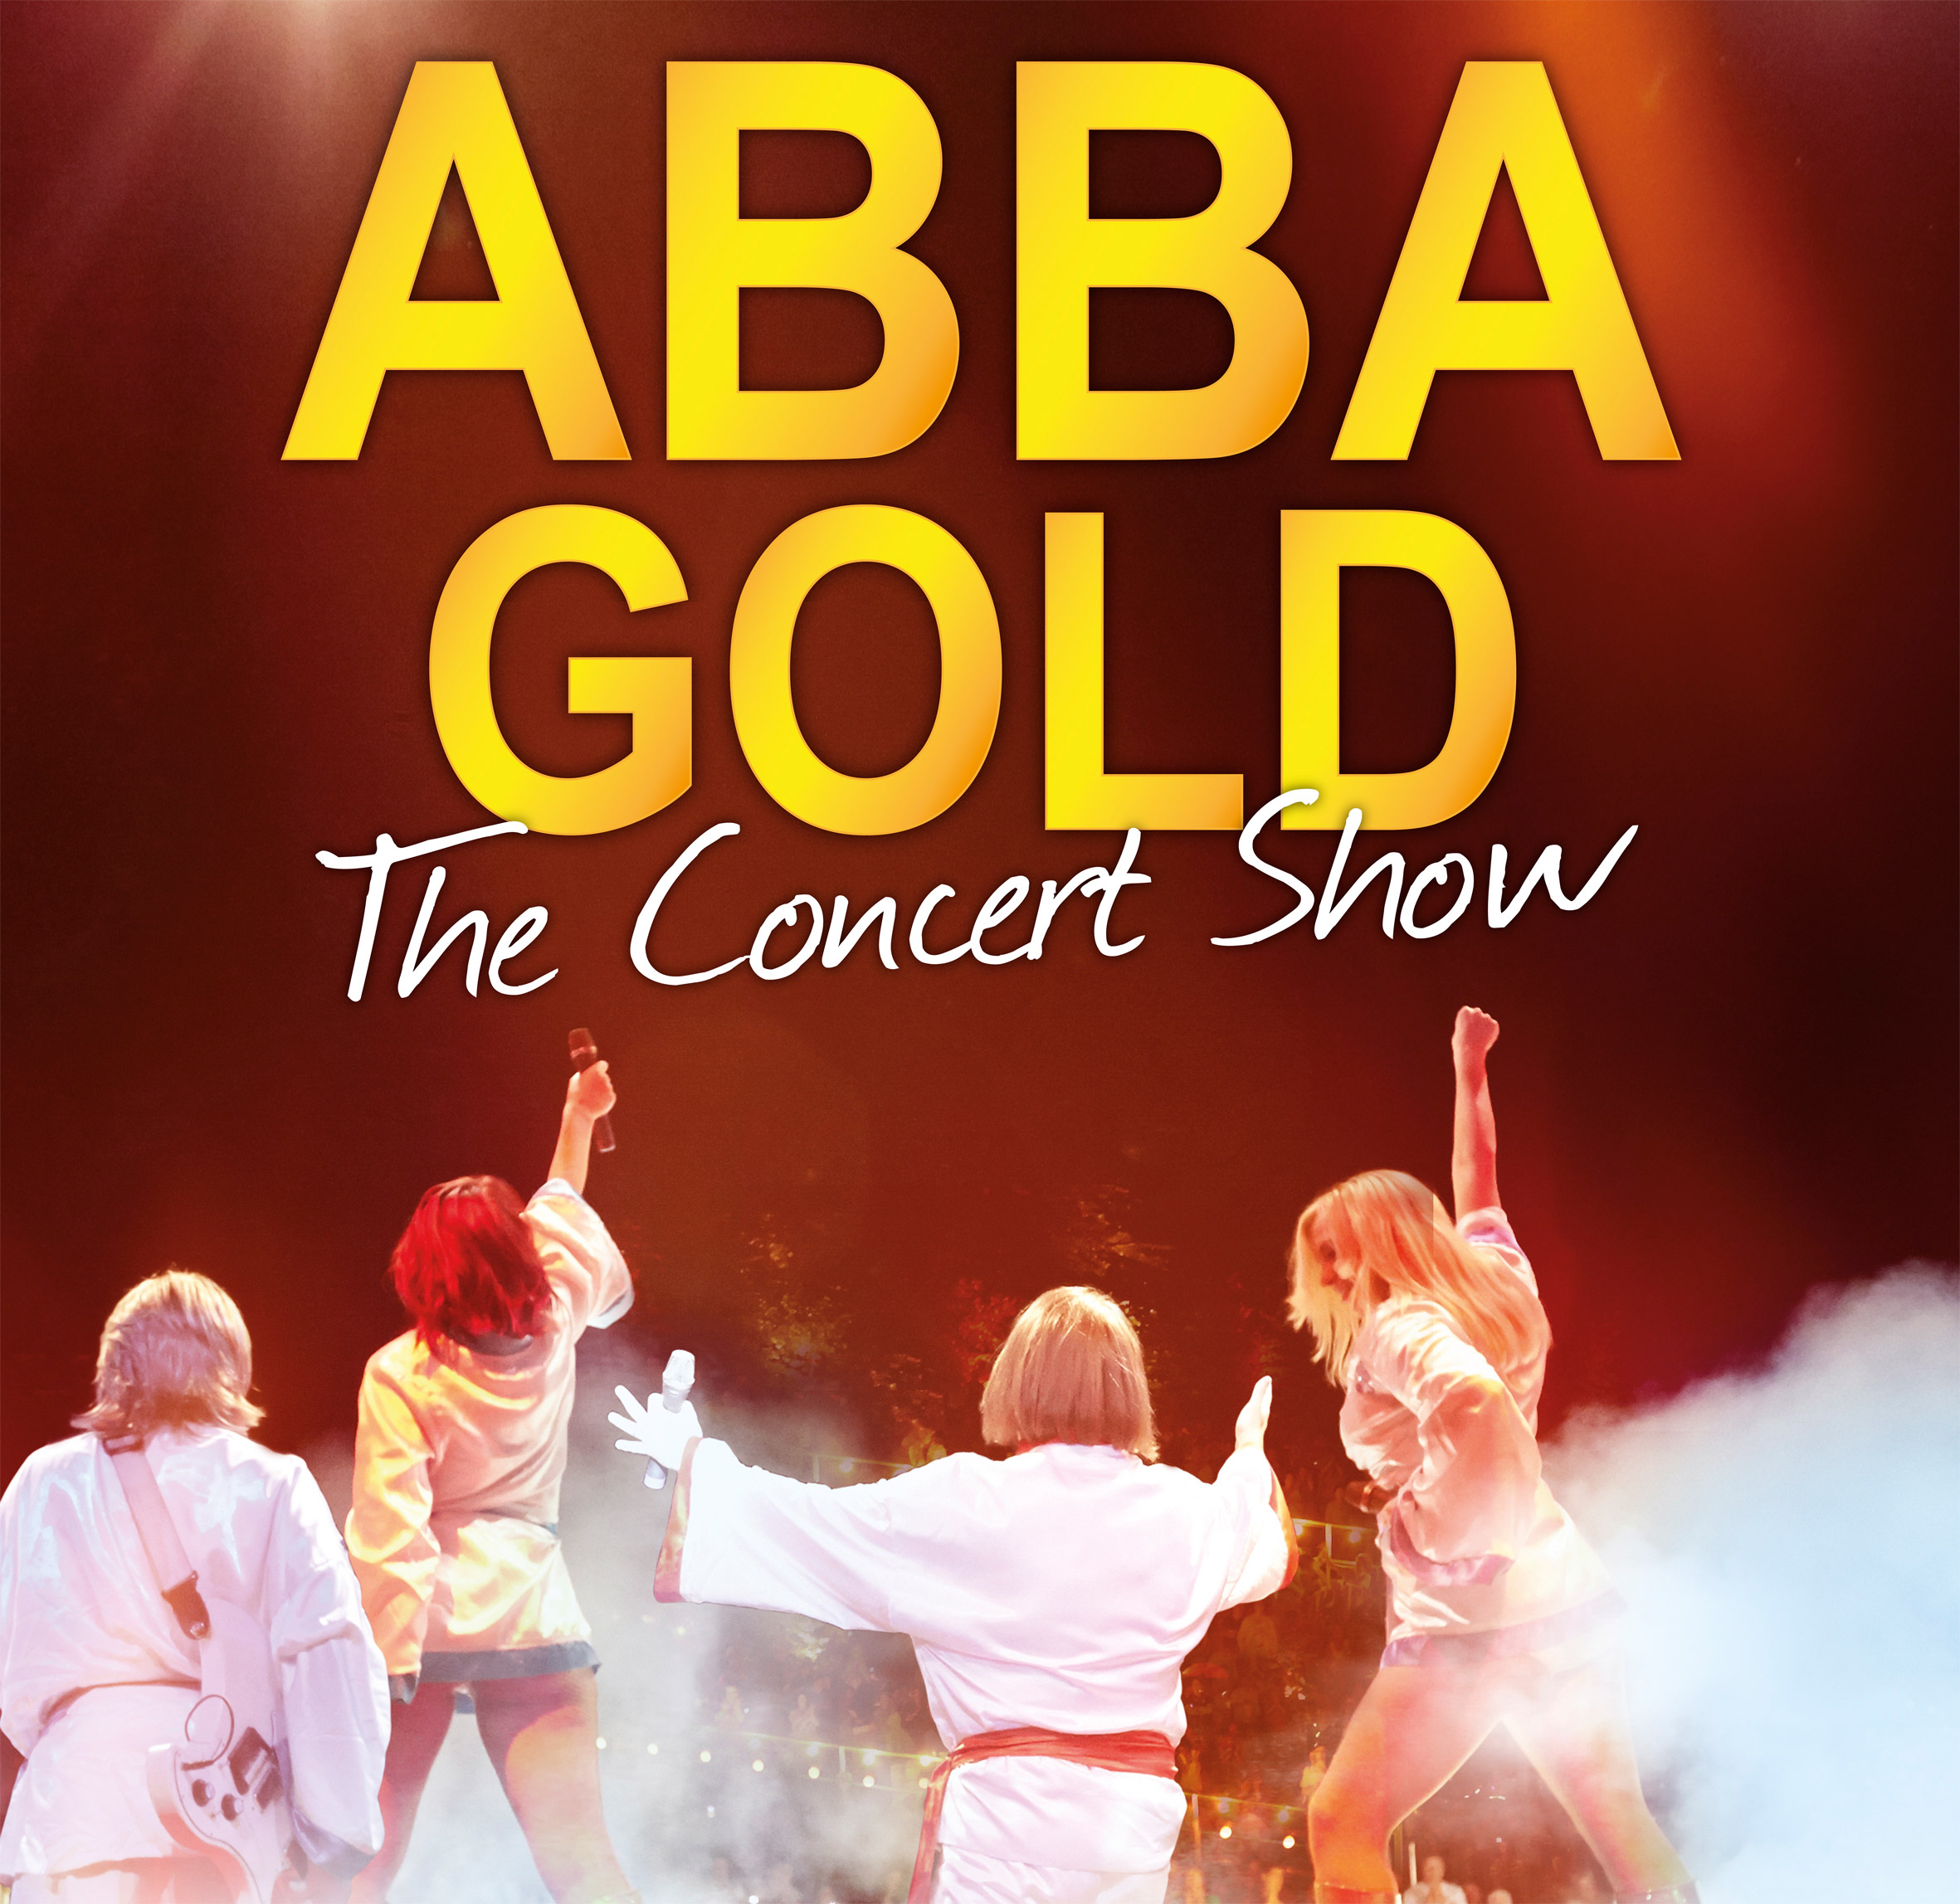 ABBA Gold - The Concert Show 2020